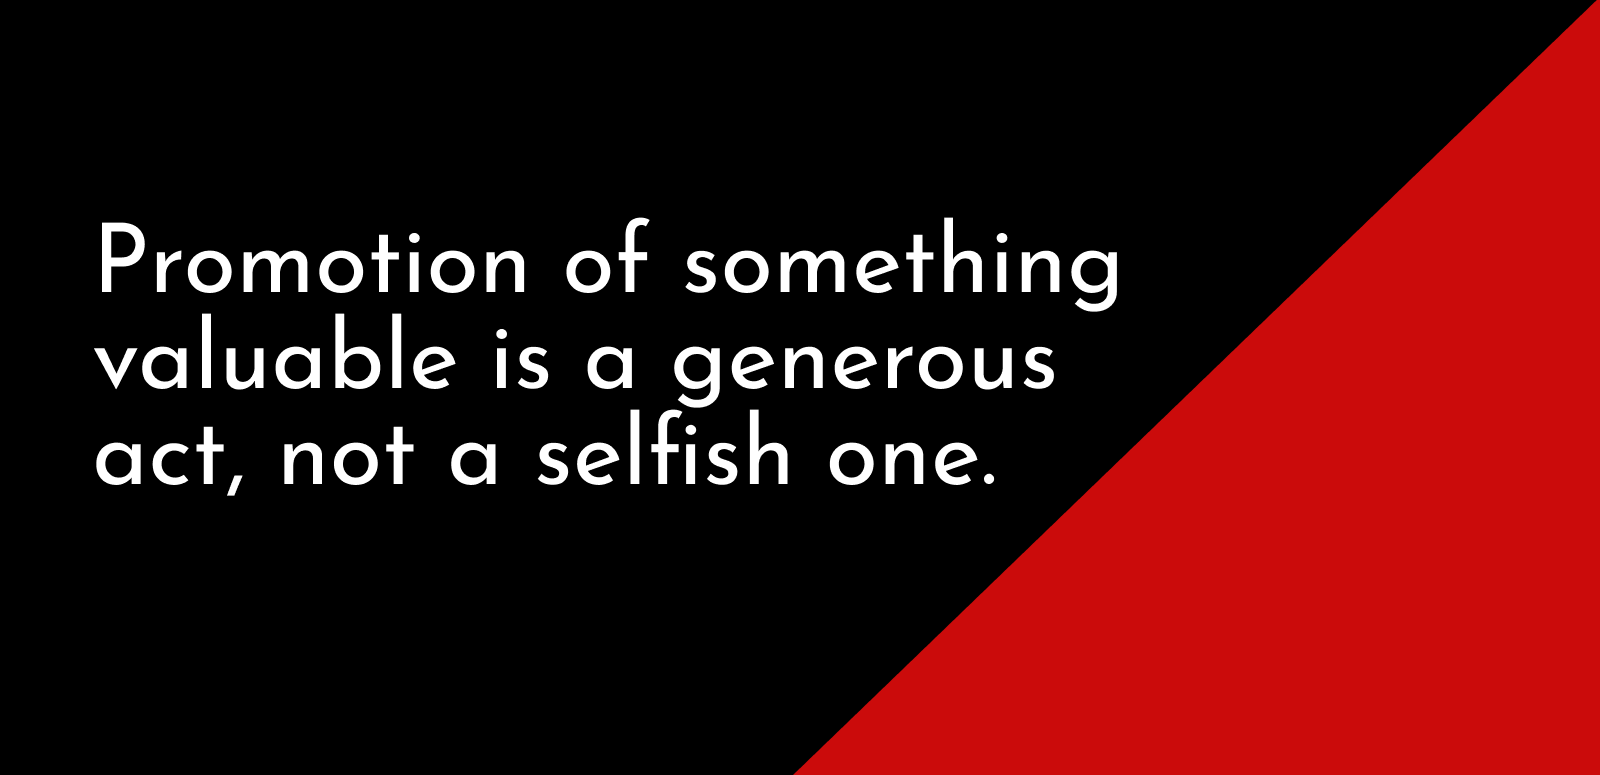 Promotion of something valuable is a generous act, not a selfish one